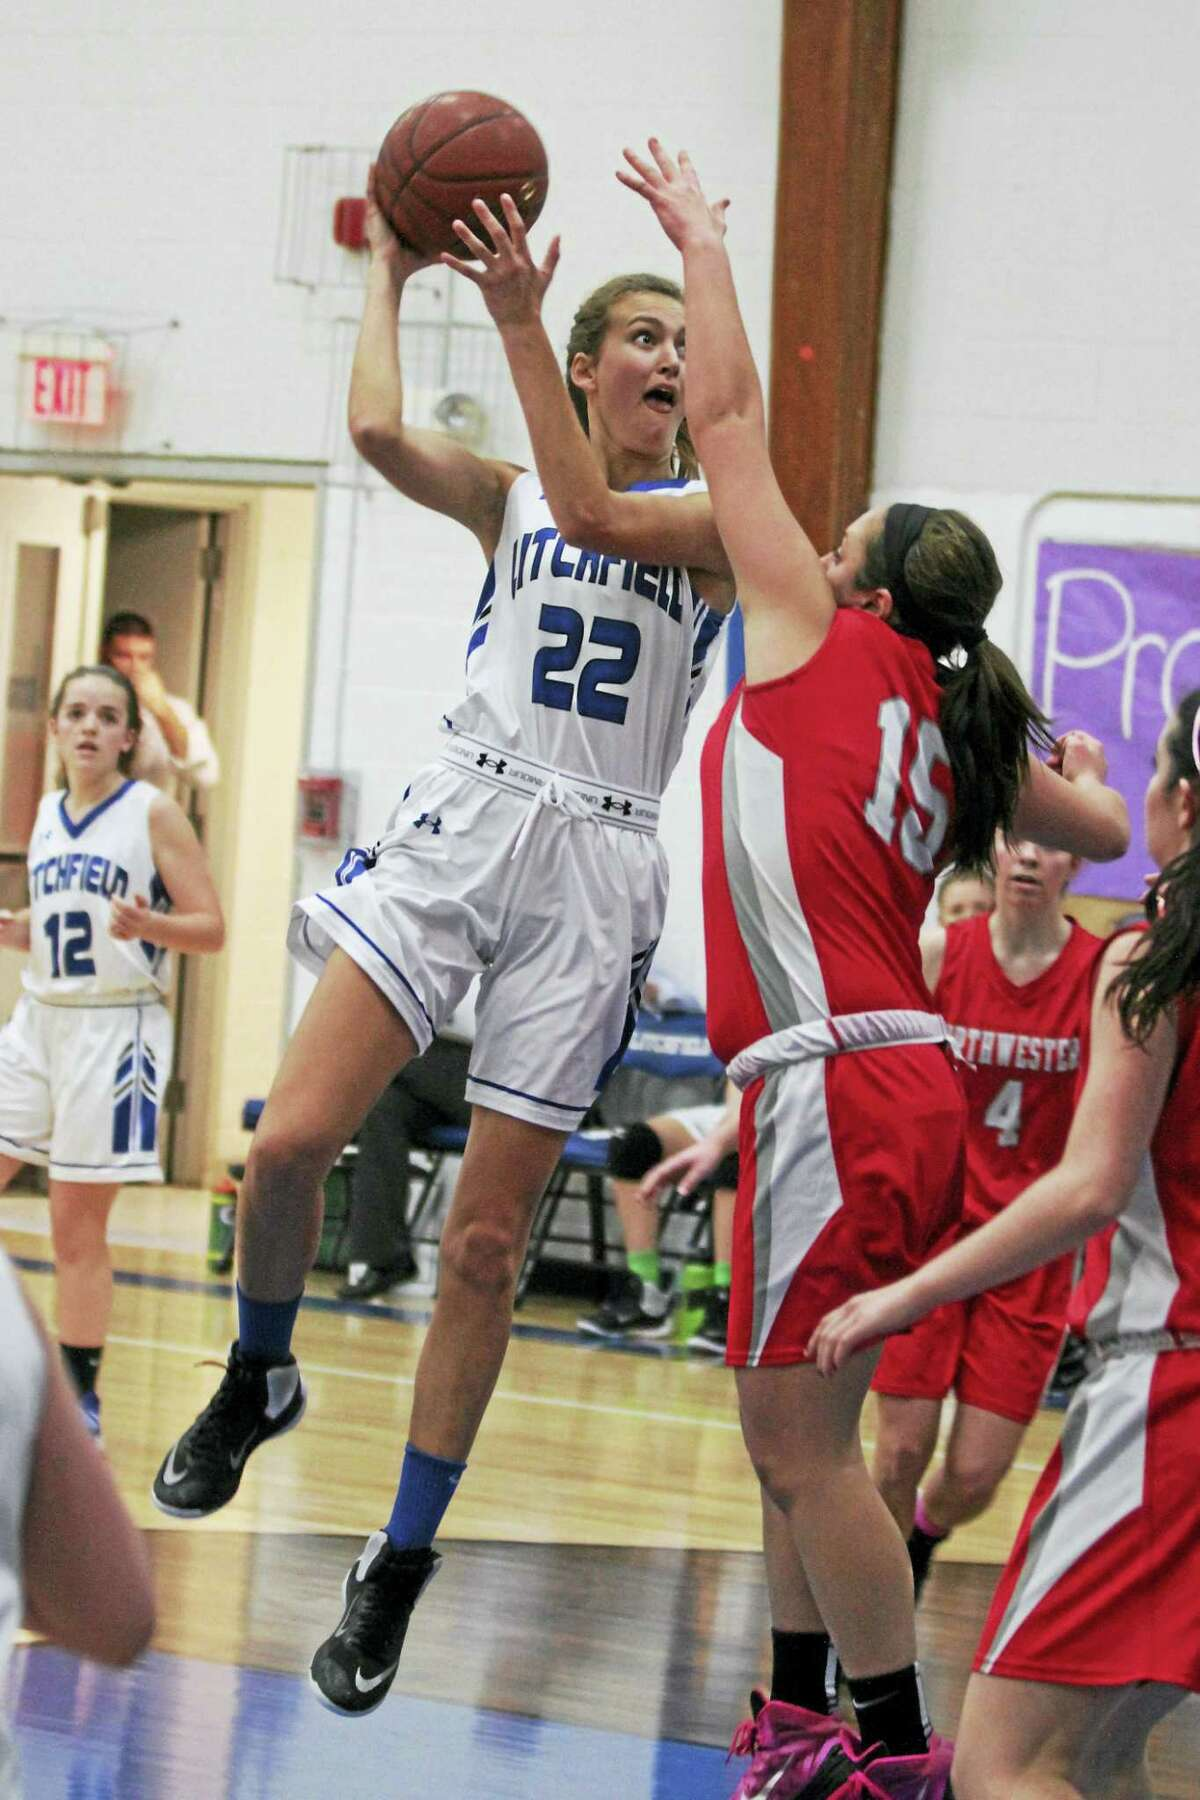 Litchfield 6-foot-1 center Elena Kennedy was the only senior starter in a battle between two young teams Thursday evening.